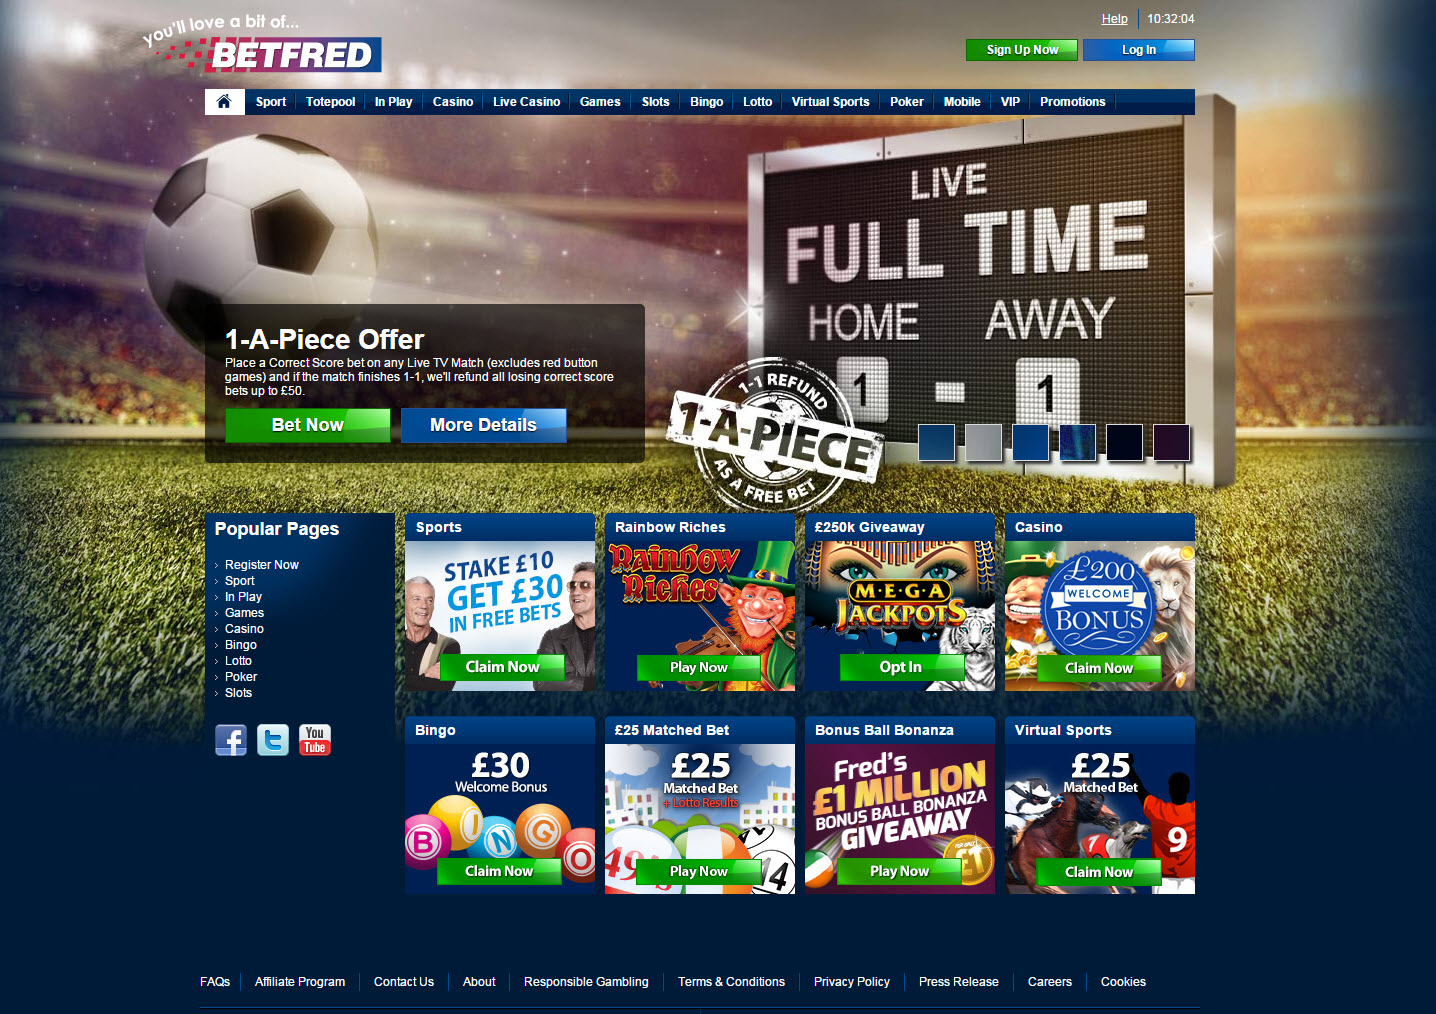 online betting sites sportsbook poker review 2012